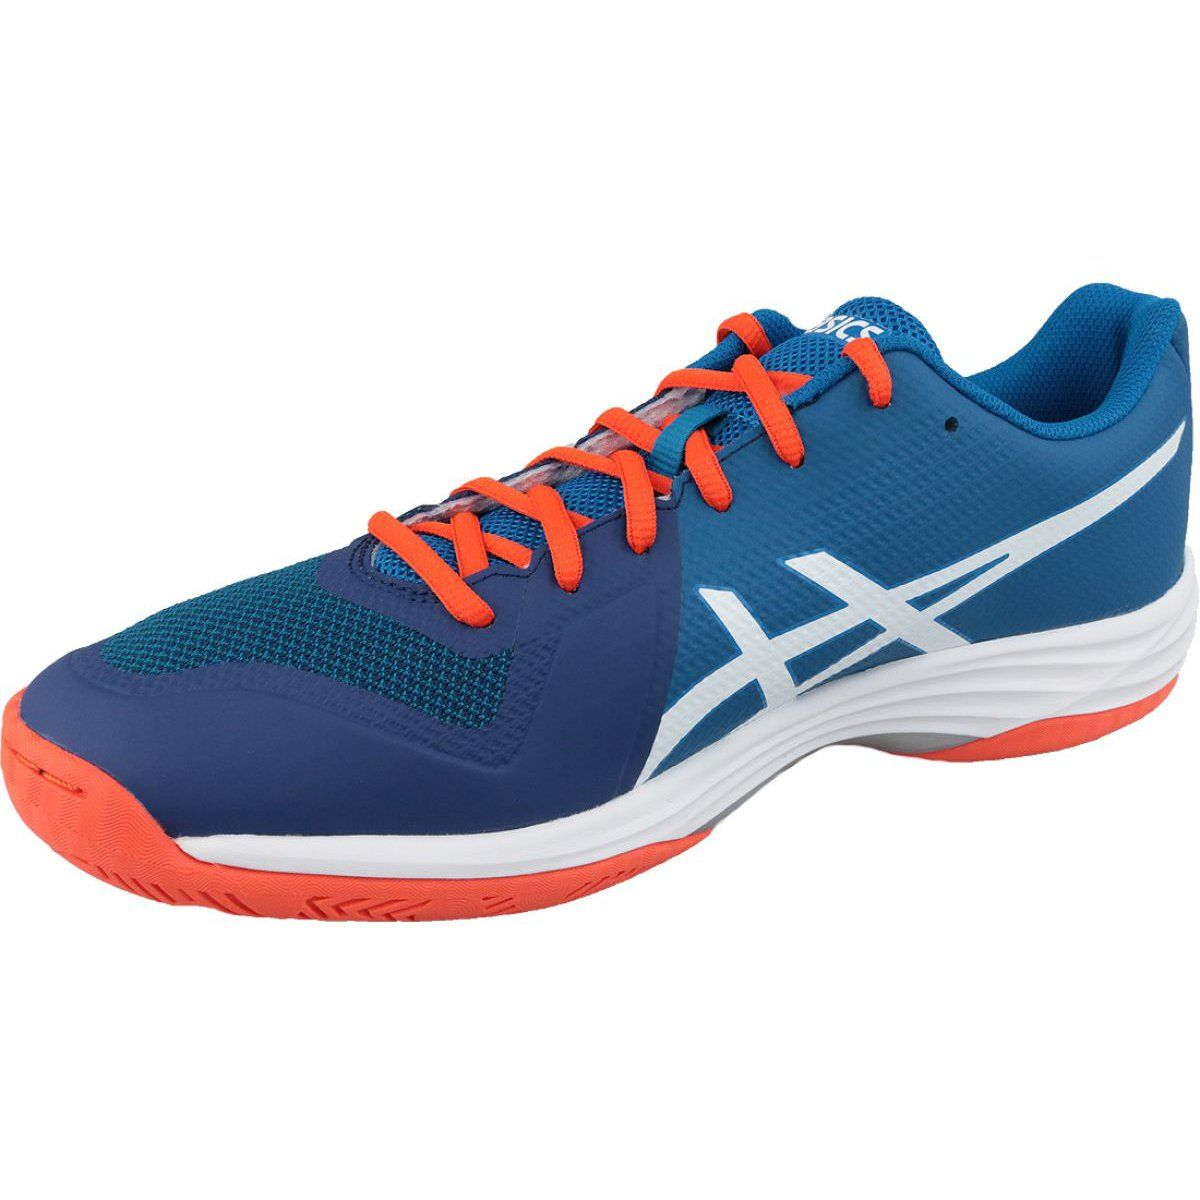 Volleyball Shoes Asics Gel Tactic M B702n 401 Blue Navy Blue With Images Volleyball Shoes Asics Shoes